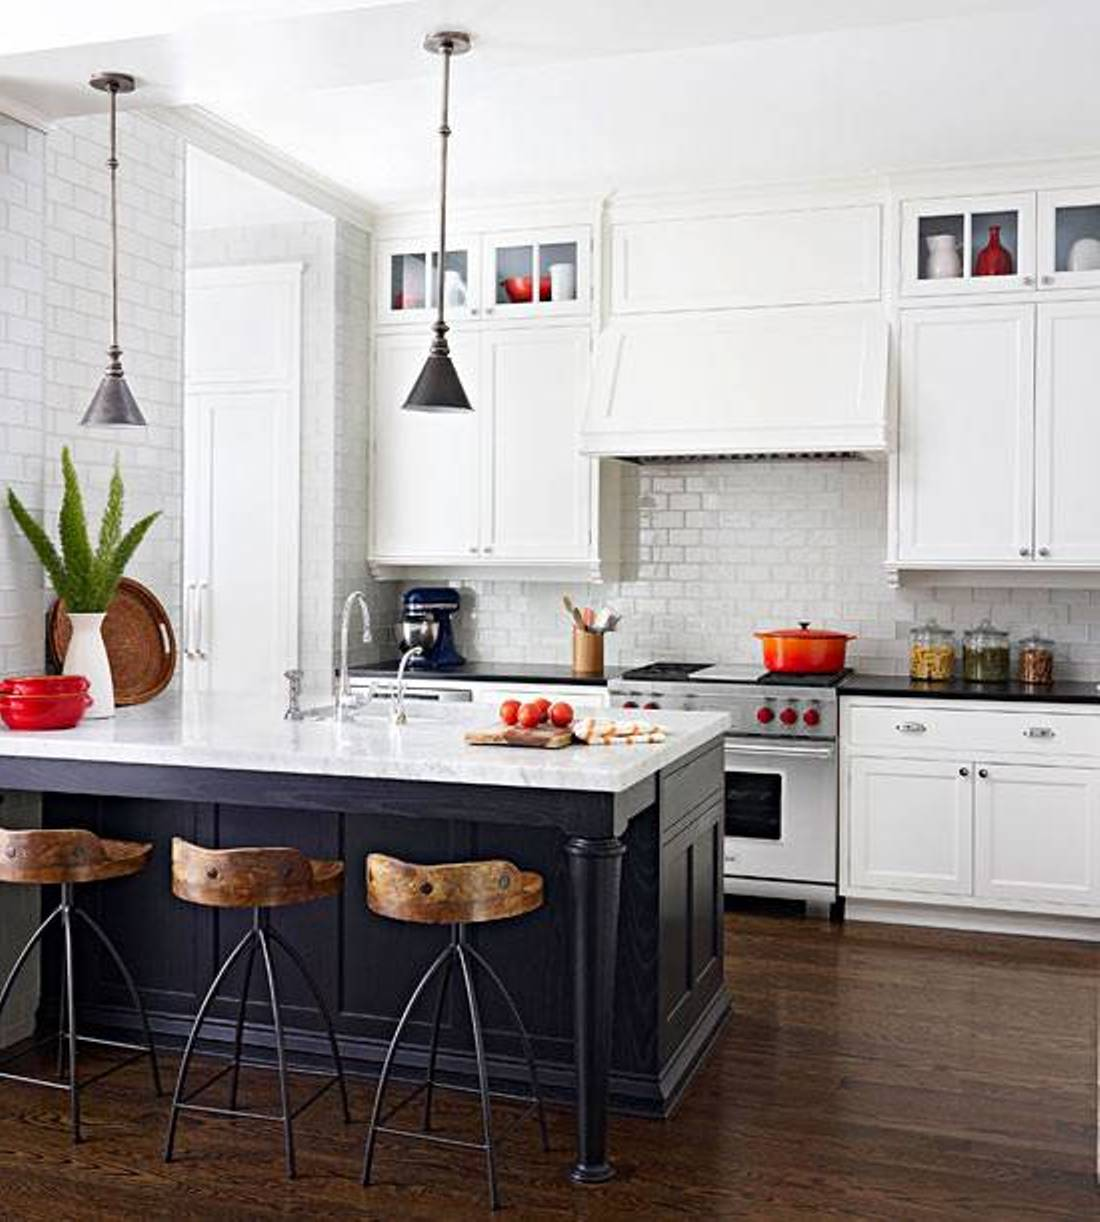 Open Kitchen Design: Why You Need It And How To Style It